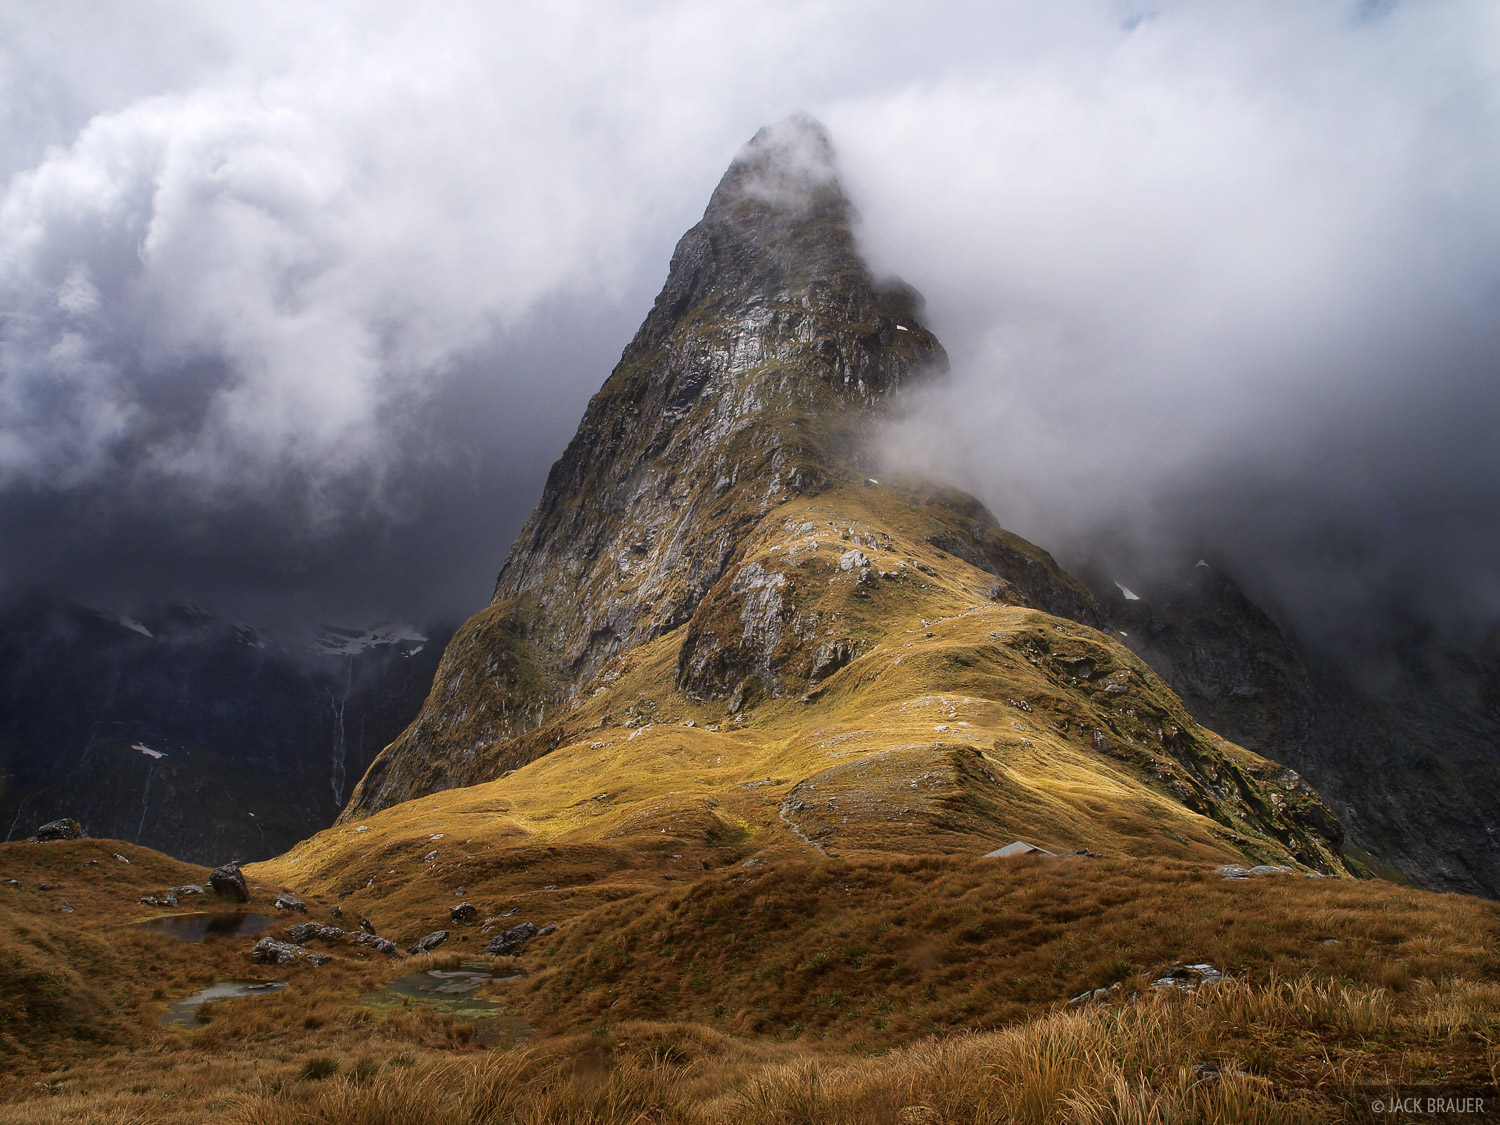 The jagged peak of Mt. Balloon cuts through the clouds on Mackinnon Pass, the high point of the Milford Track, New Zealand's...